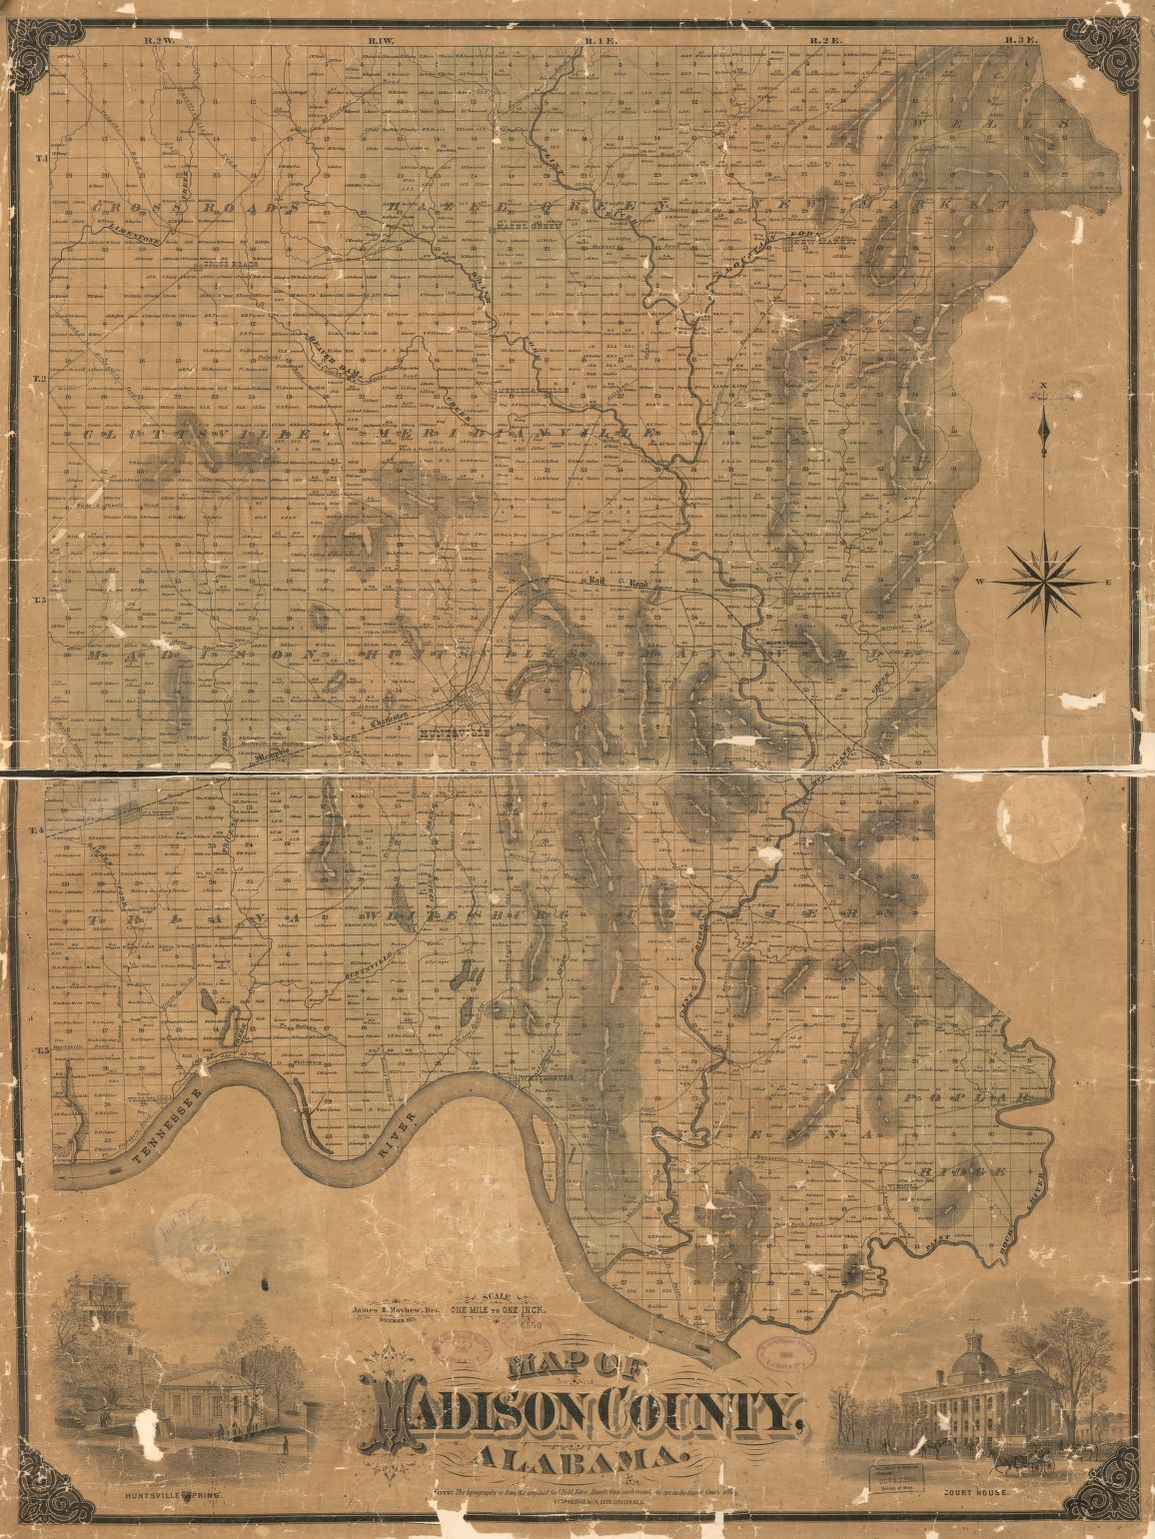 Map of Madison county  Alabama   Library of Congress